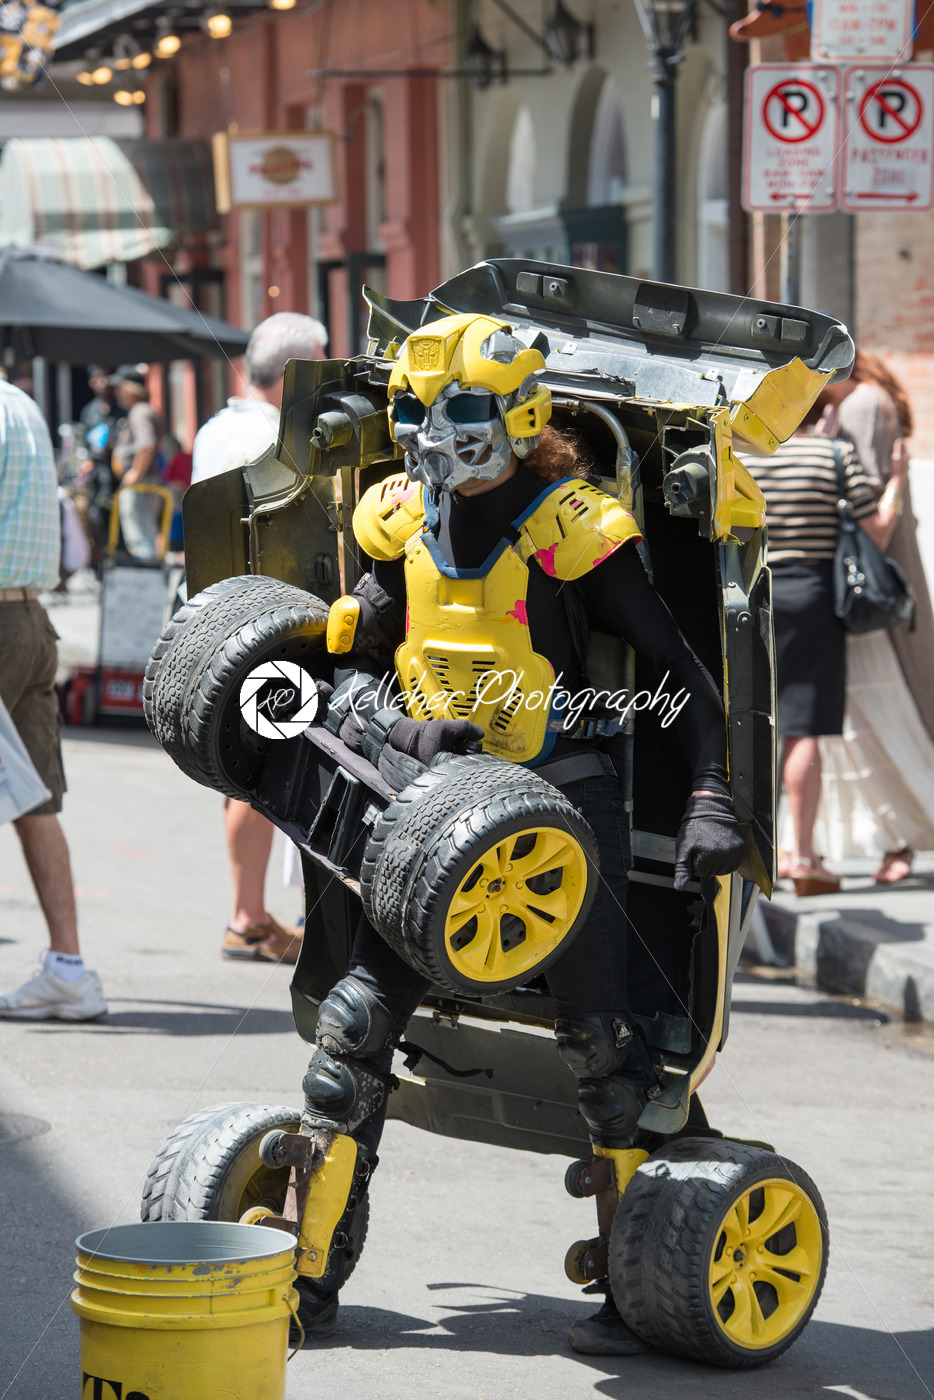 NEW ORLEANS, LA – APRIL 13: Street performer in New Orleans, man transforms between car and robot on April 13, 2014 - Kelleher Photography Store